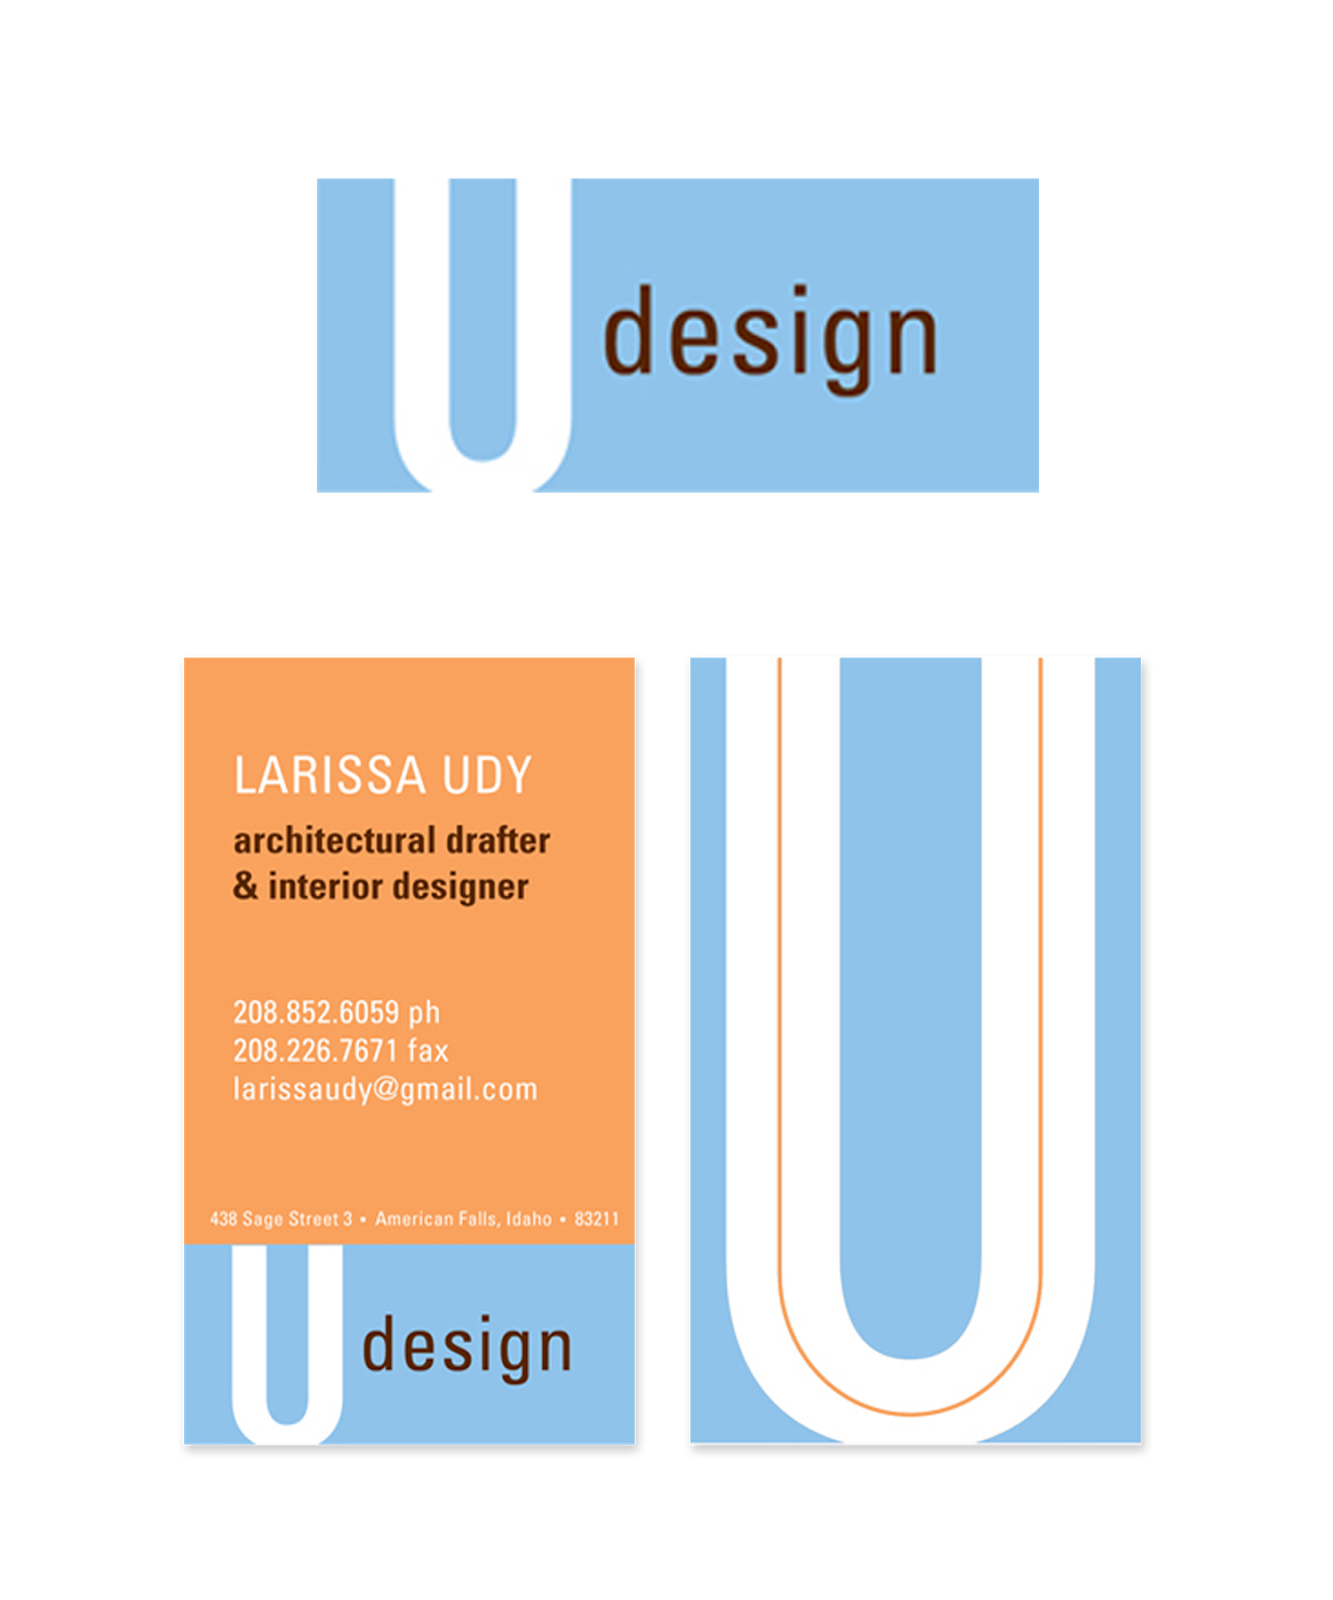 Lyndsay johnson identity design any additional file formats you may need for social media icons facebook twitter etc magicingreecefo Images